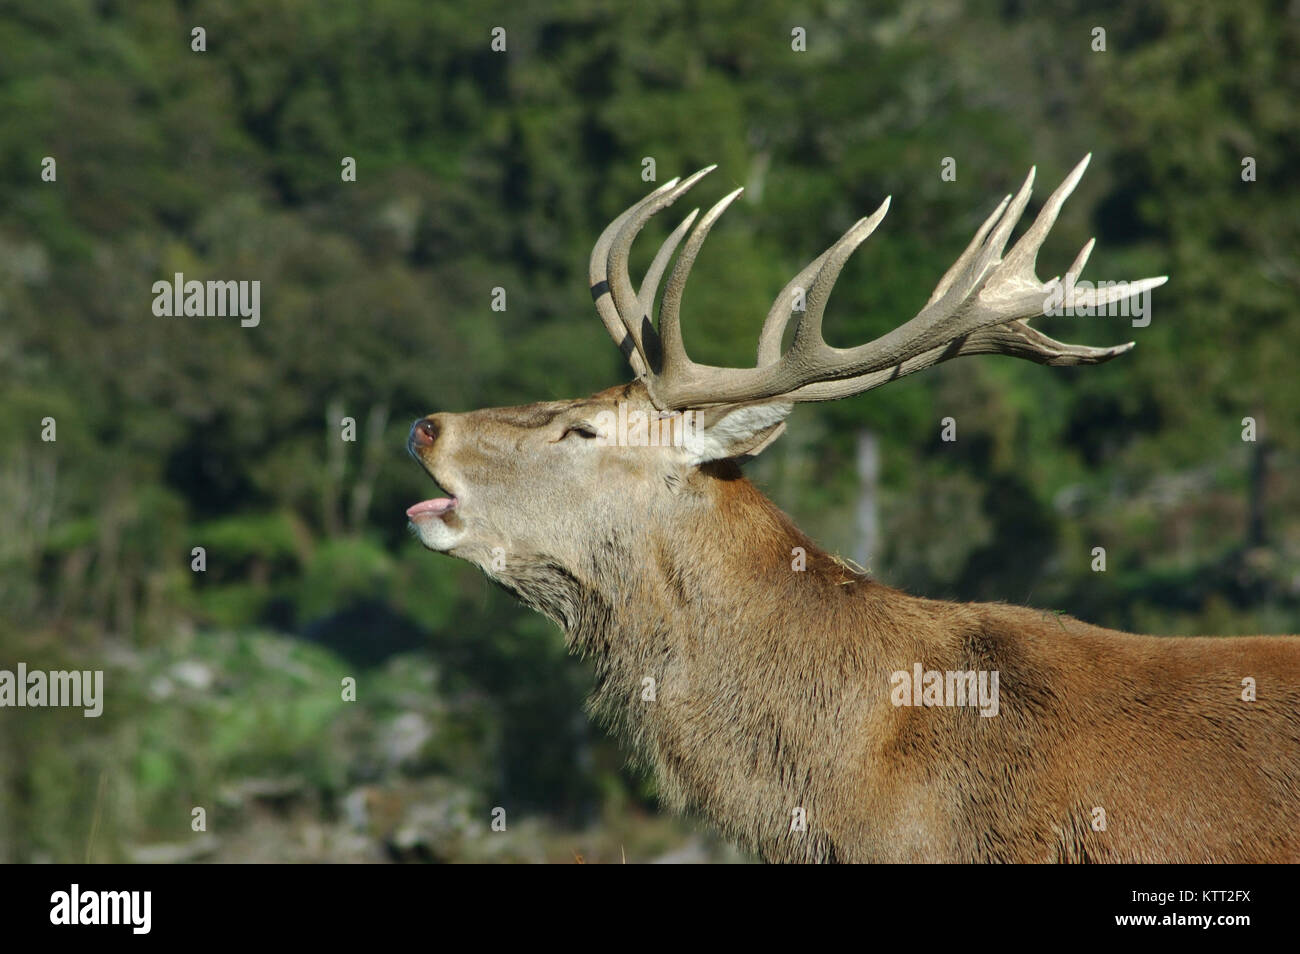 Red deer stag, Cervus elephus, roaring during the rut, West Coast, South Island, New Zealand - Stock Image